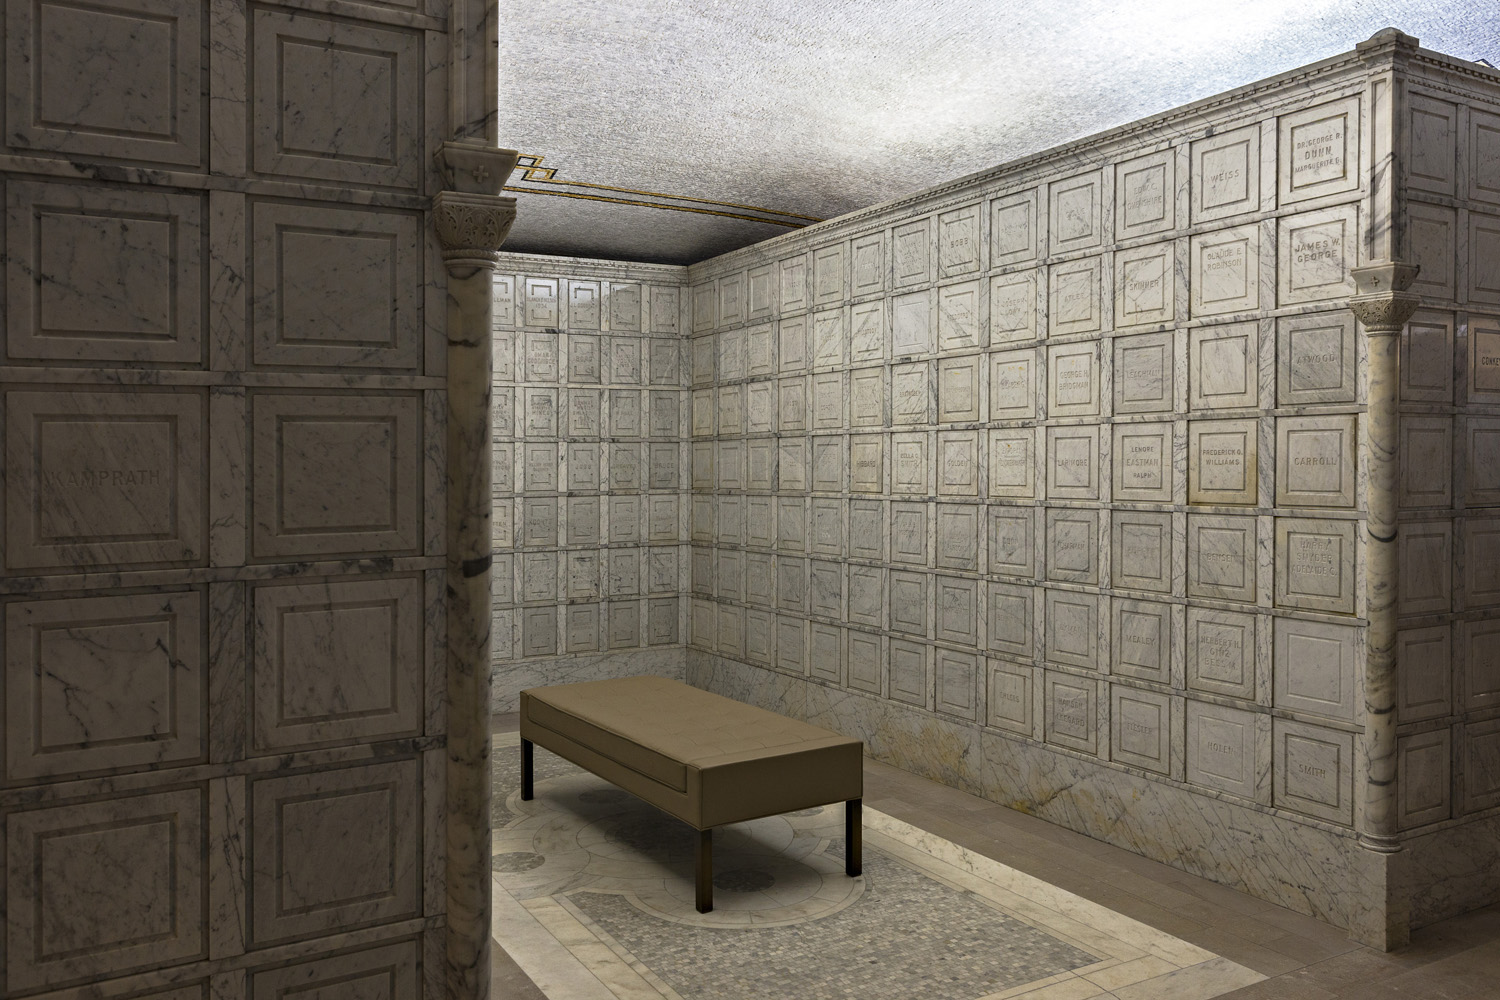 Roughly a third of ashes get scattered, a third get buried and a third get stored in urns. Lakewood Cemetery offers niches in which families can permanently store their urns.